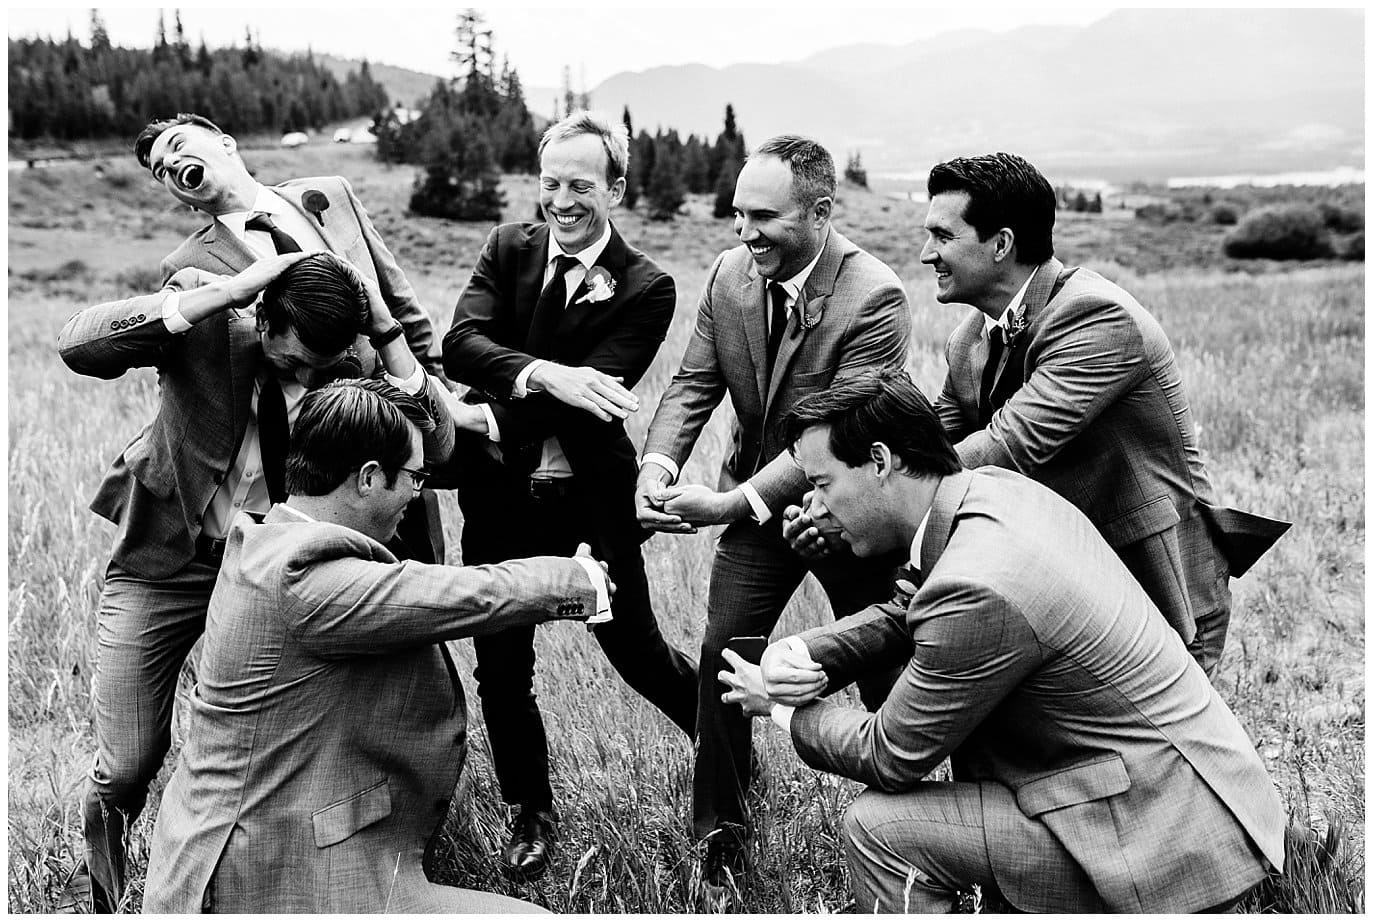 groom and groomsmen playing the drums at Arapahoe Basin Black Mountain Lodge Wedding by Arapahoe Basin Wedding Photographer Jennie Crate